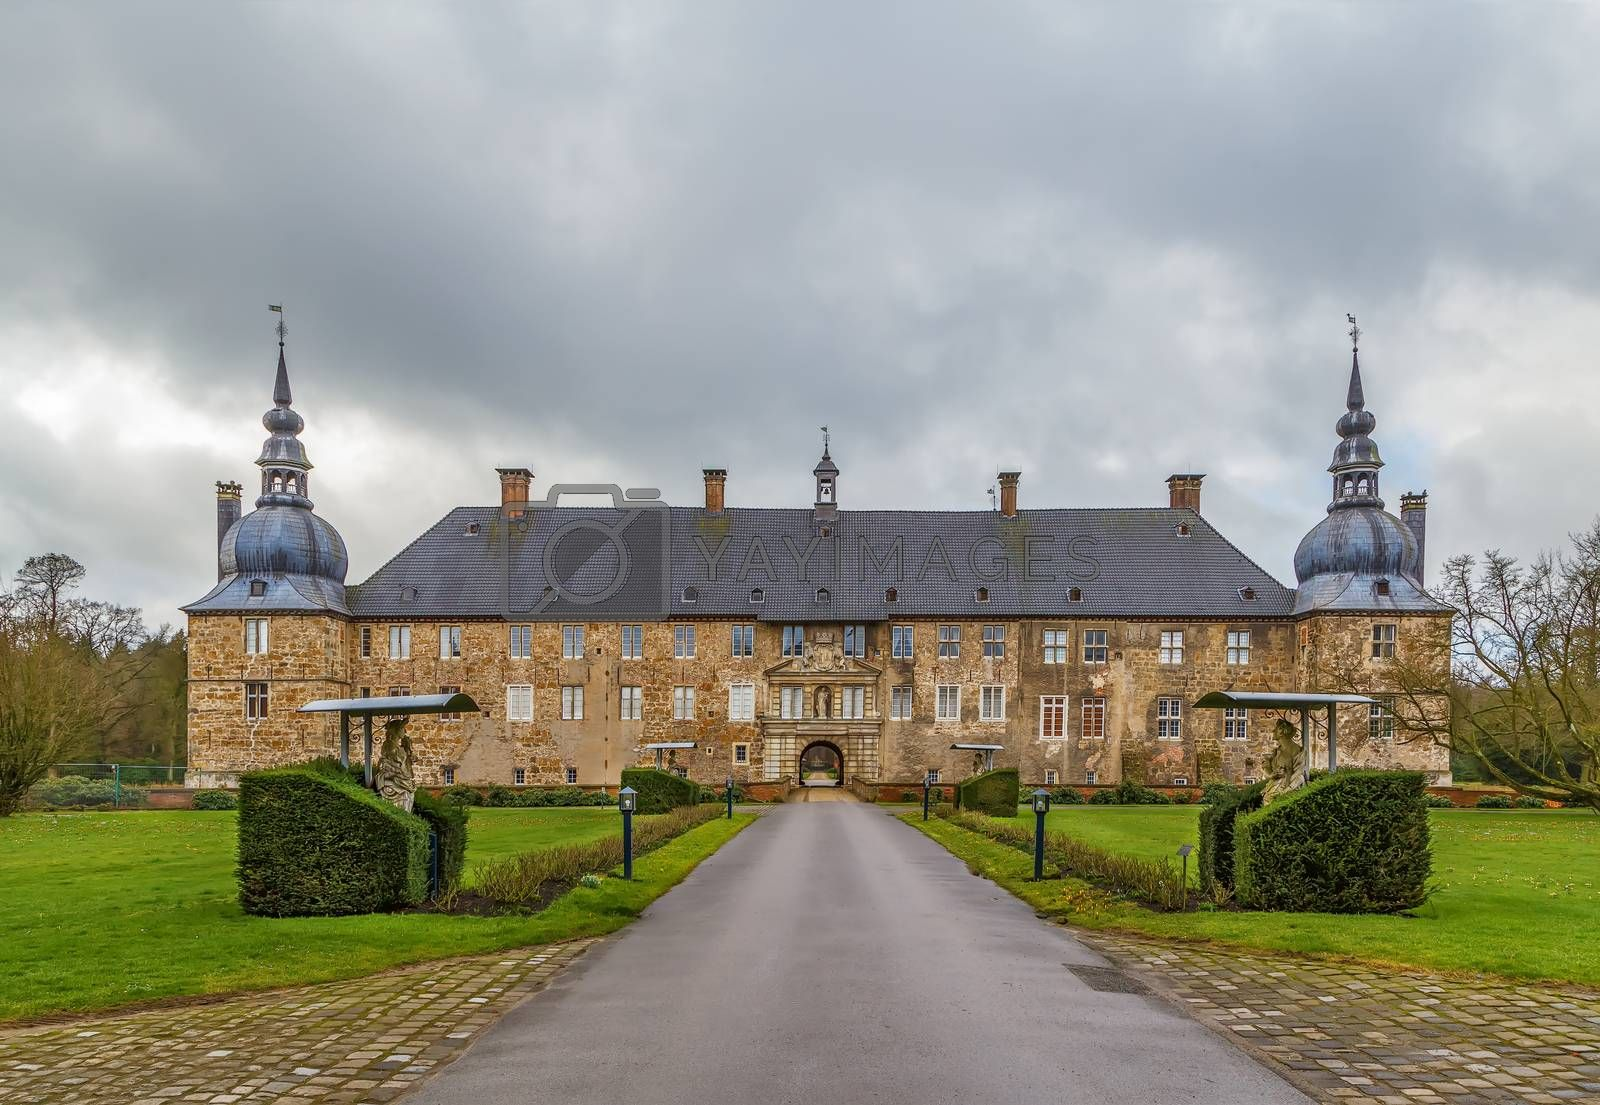 Royalty free image of Castle Lembeck, Germany by borisb17